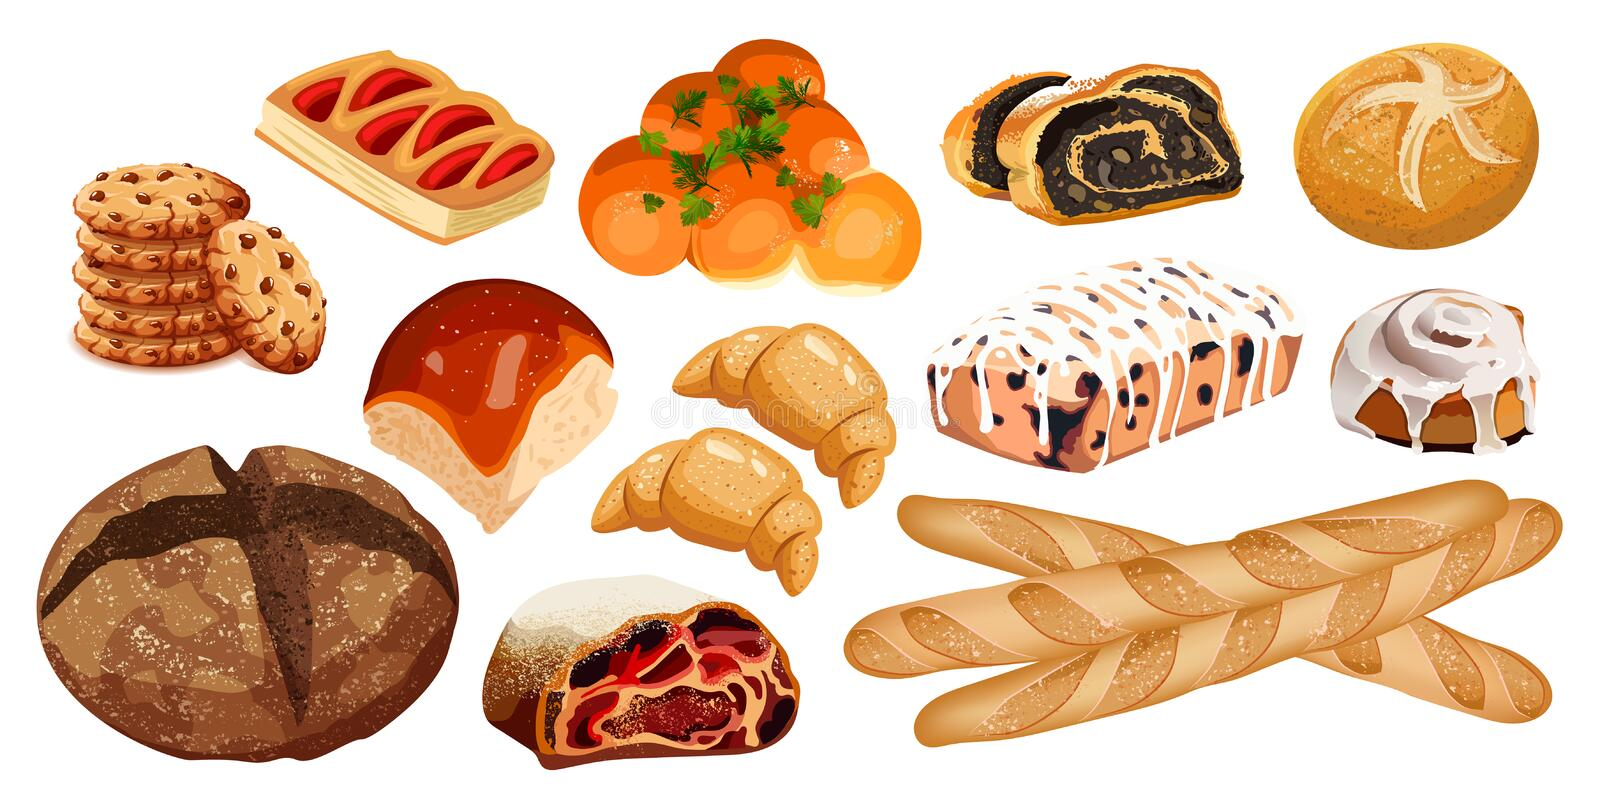 Set vector bread icons. Rye, whole grain and wheat bread, pretzel, muffin, croissant, bagel, french baguette, cherry. Strudel, bun, muffin with icing, roll with royalty free illustration